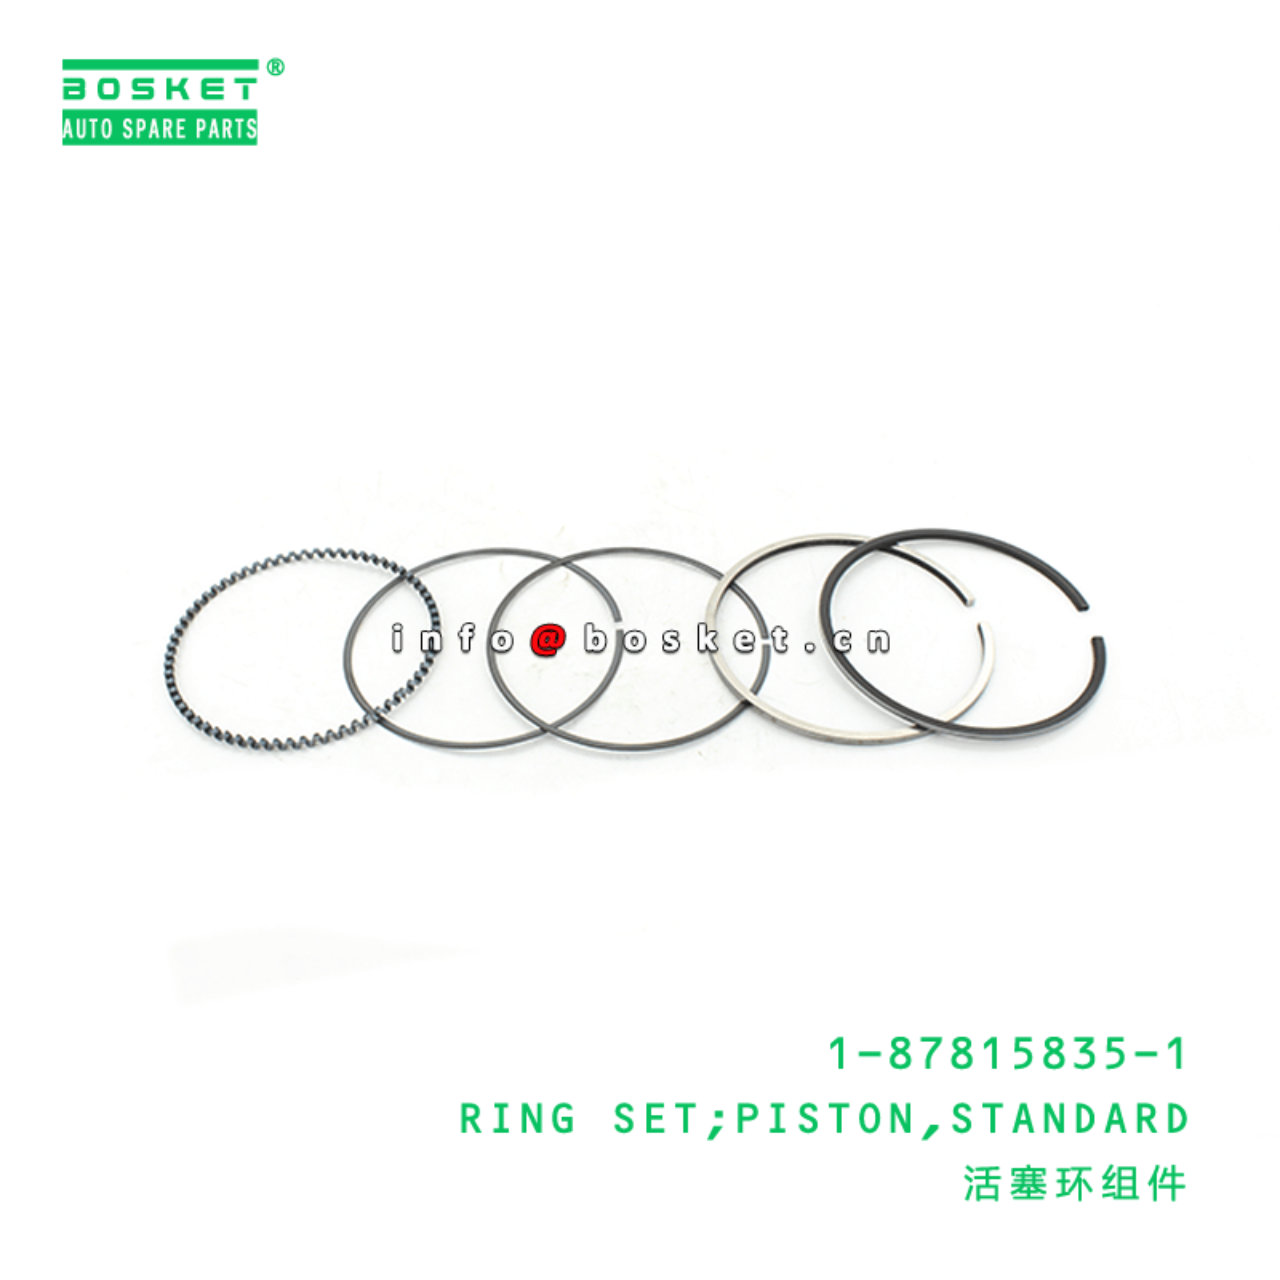 1-87815835-1 Standard Piston Ring Set 1878158351 Suitable for ISUZU LV